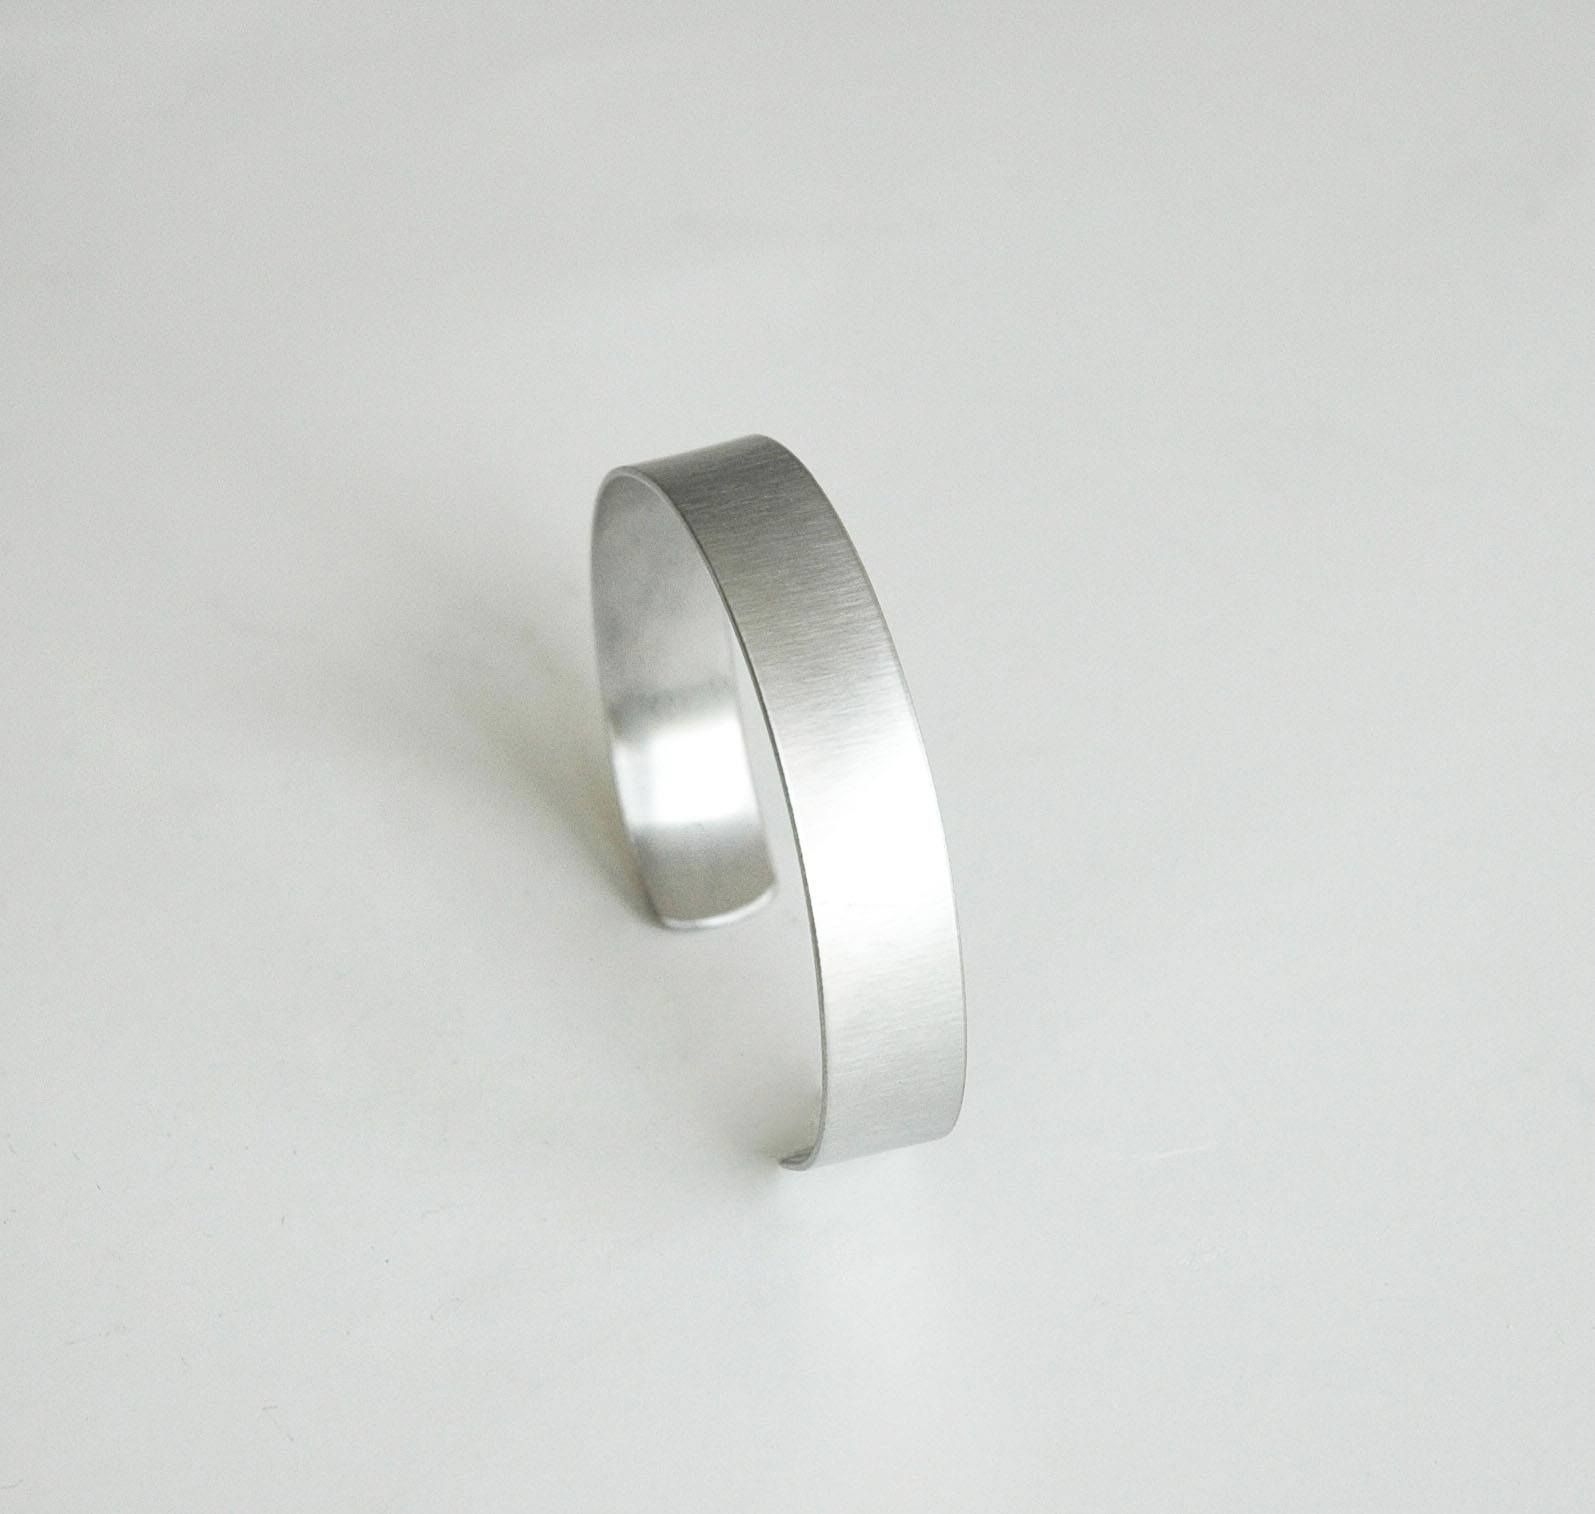 """Stylish Stainless Steel Bracelets """"Back to Basics"""" Collection by Cheche Handmade http://www.cheche.lt/produktas/b2b-apyranke-1366"""